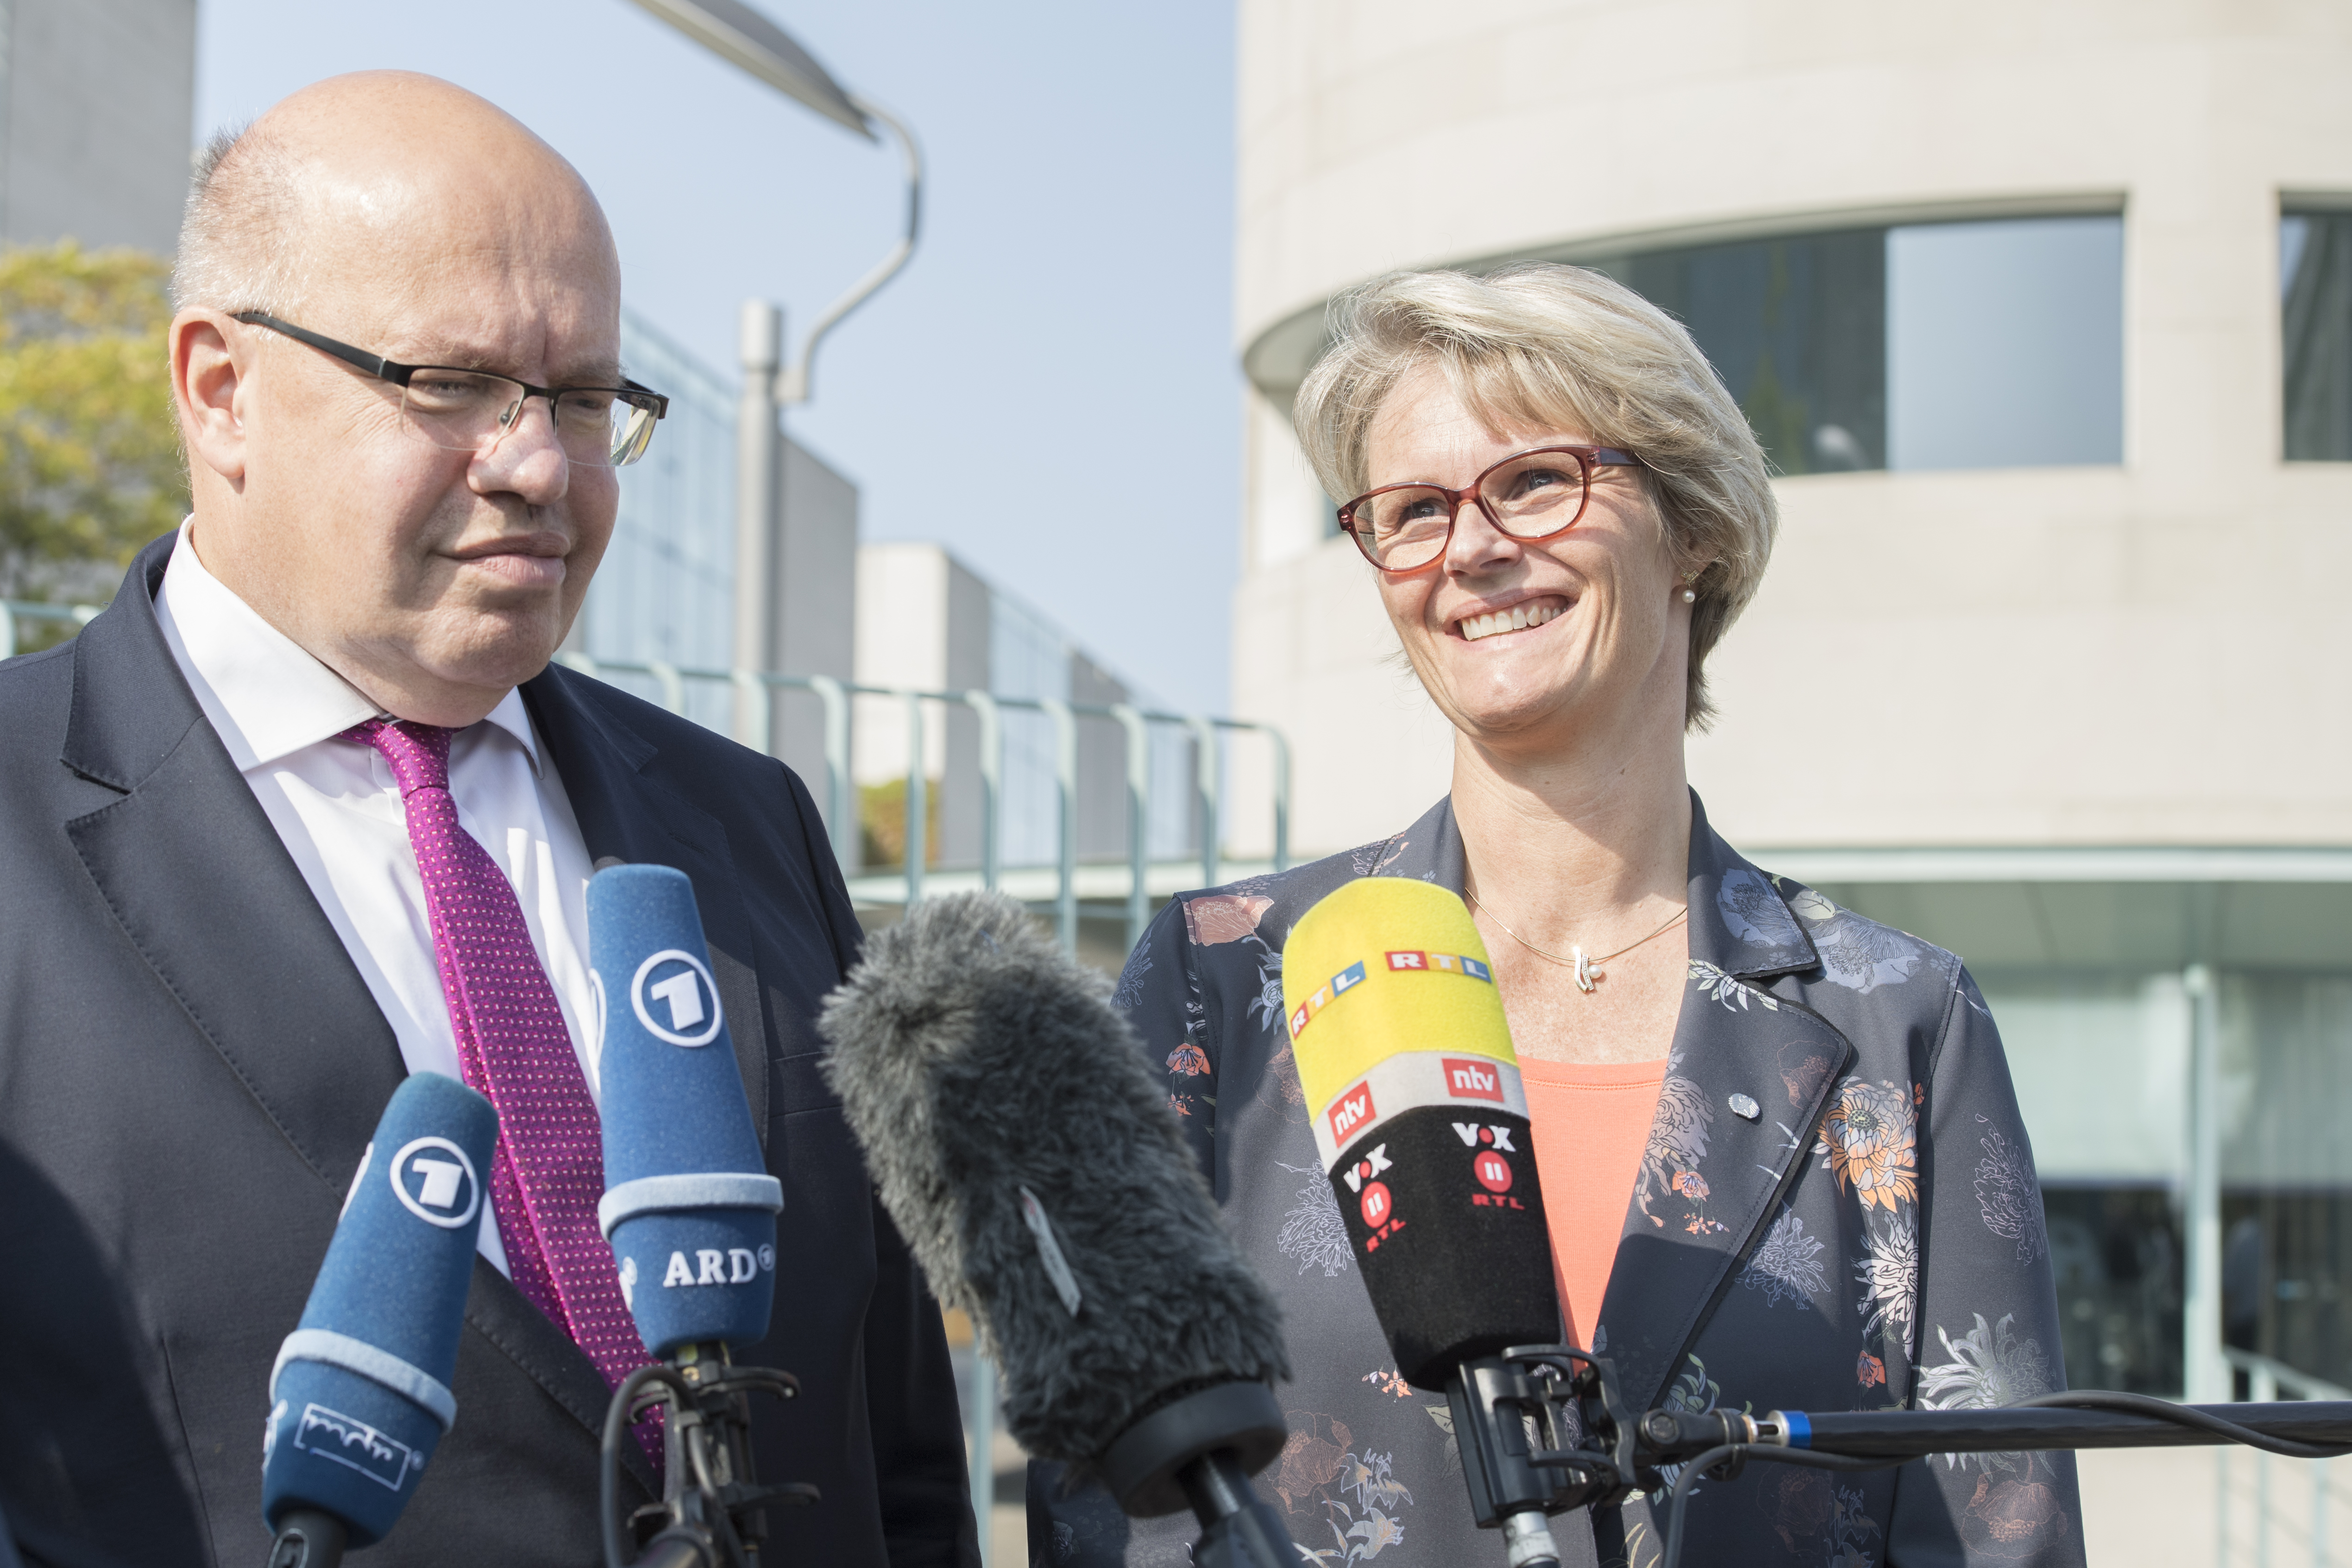 Germany to pump €1bn into breakthrough innovation - European